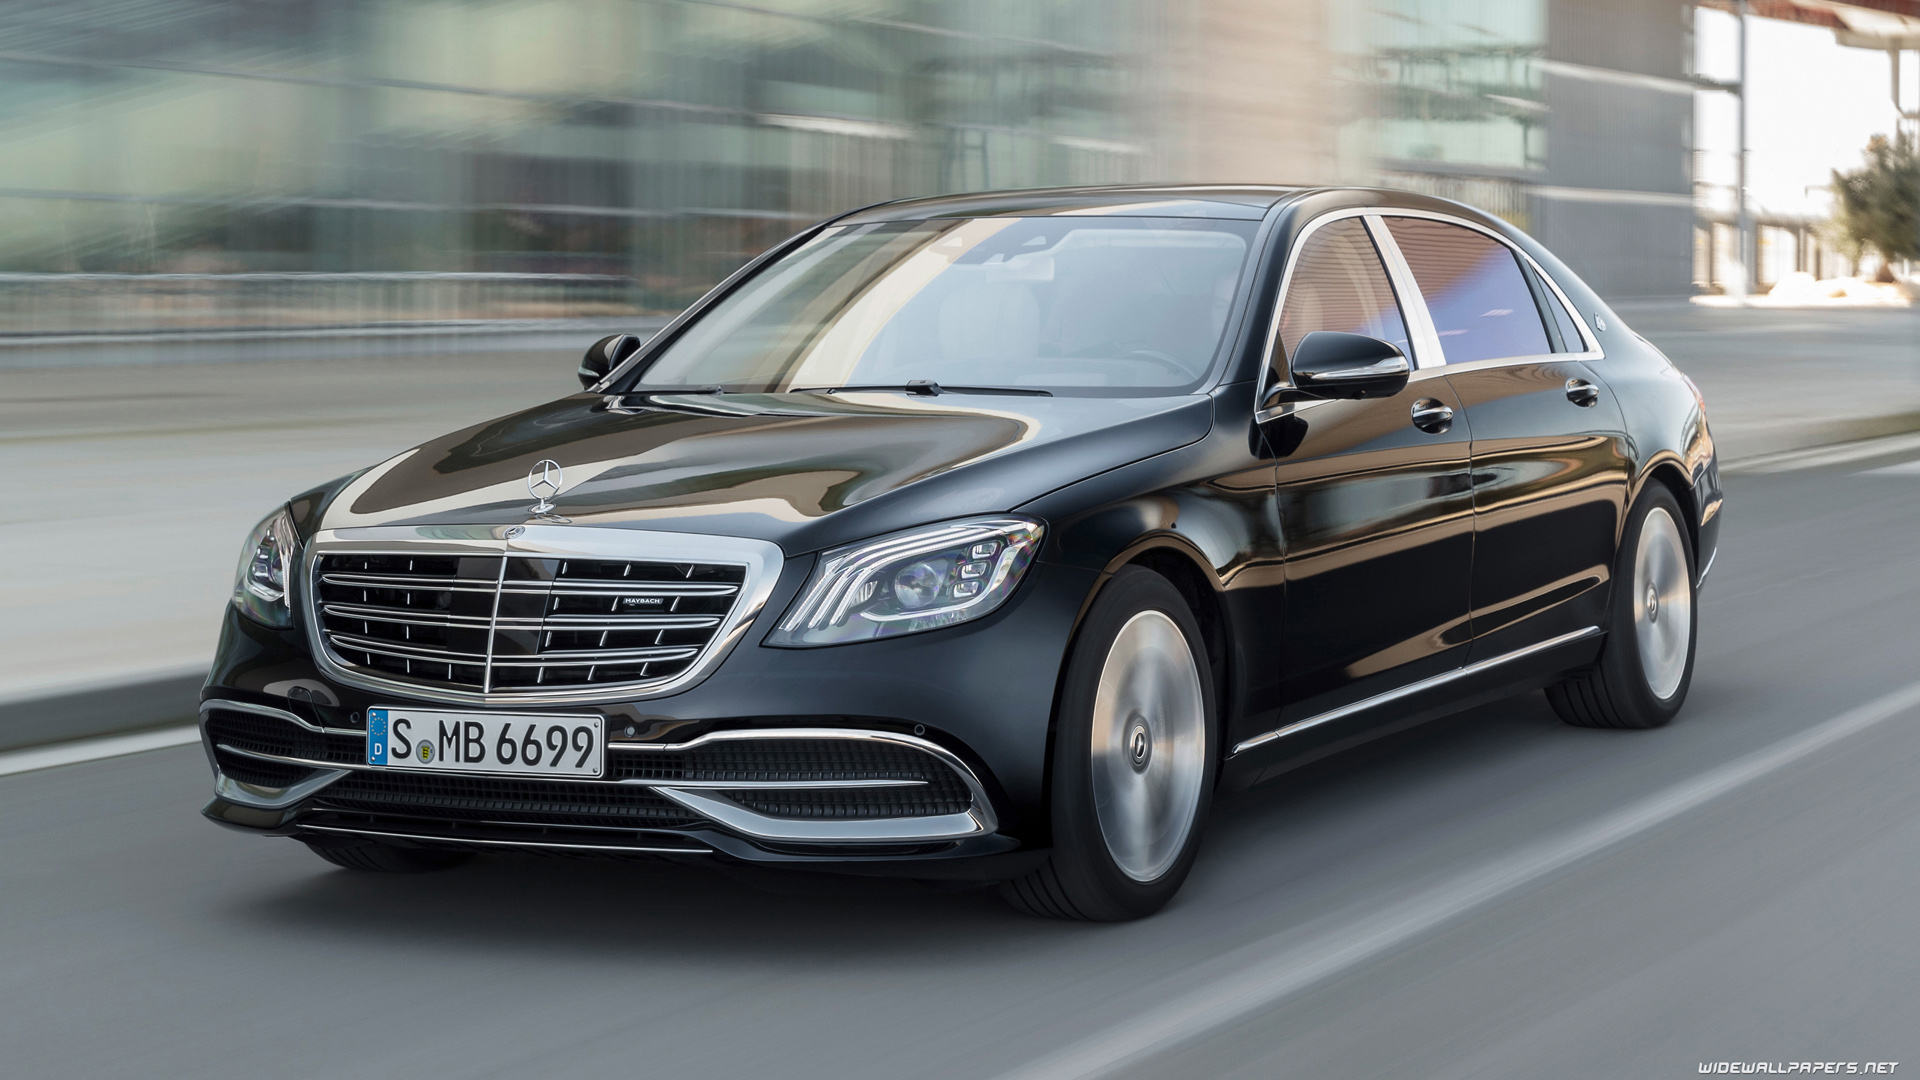 Maybach S Class Cars Desktop Wallpapers Hd And Wide Wallpapers